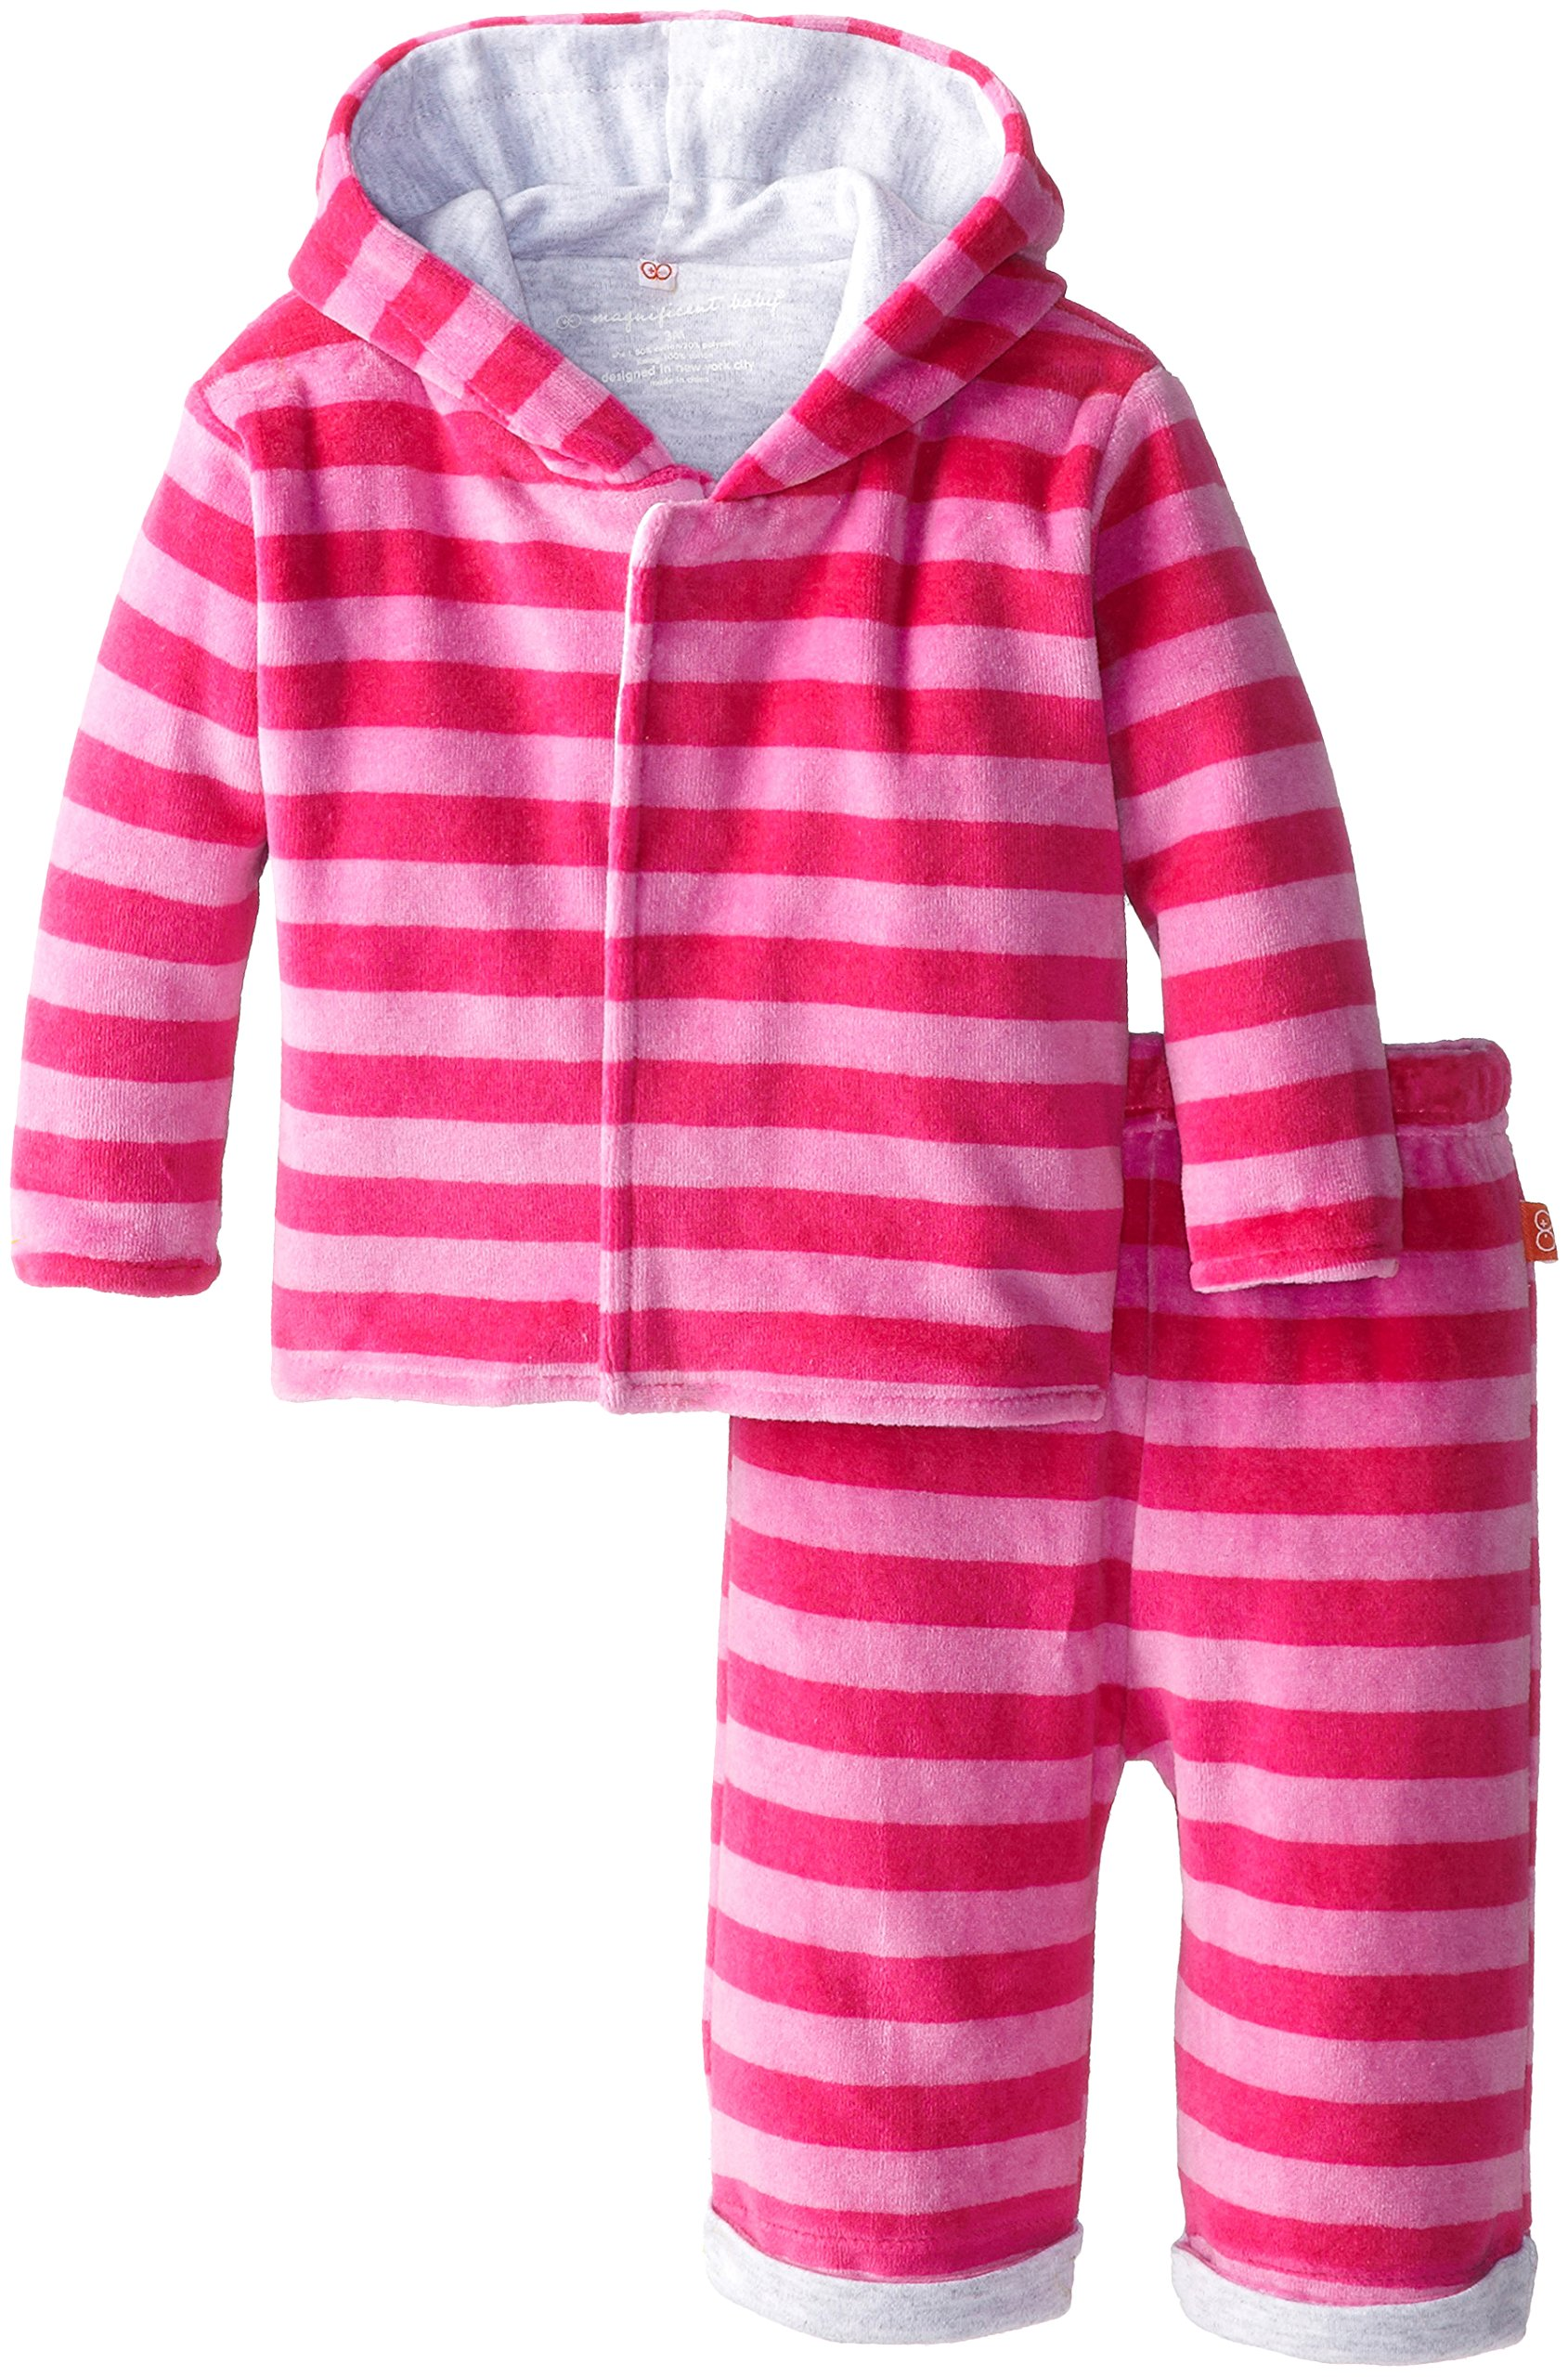 Magnificent Baby Baby Girls' Berry Velour Hoodie and Pants